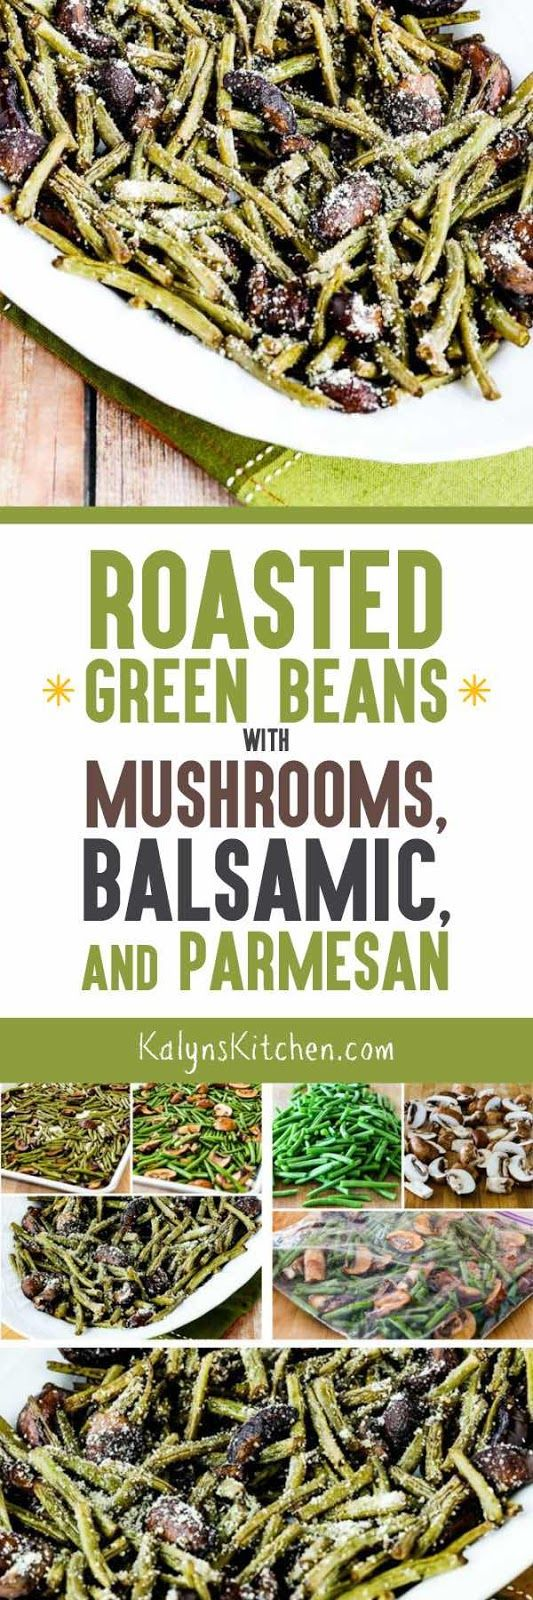 Roasted Green Beans with Mushrooms, Balsamic, and Parmesan. [found on ...